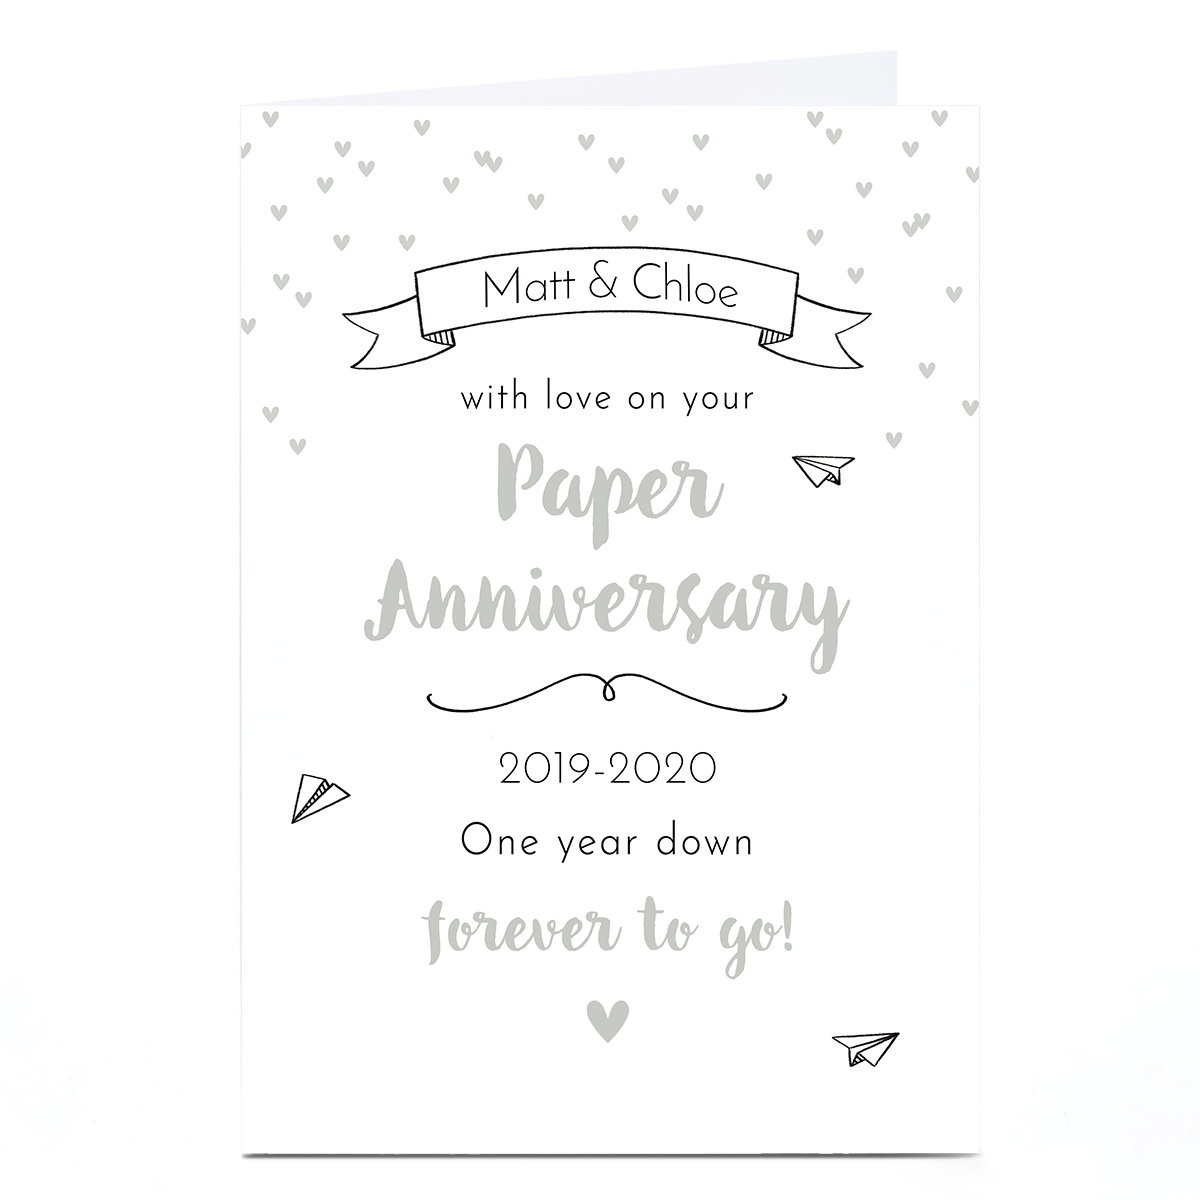 Personalised Anniversary Card - Paper Anniversary